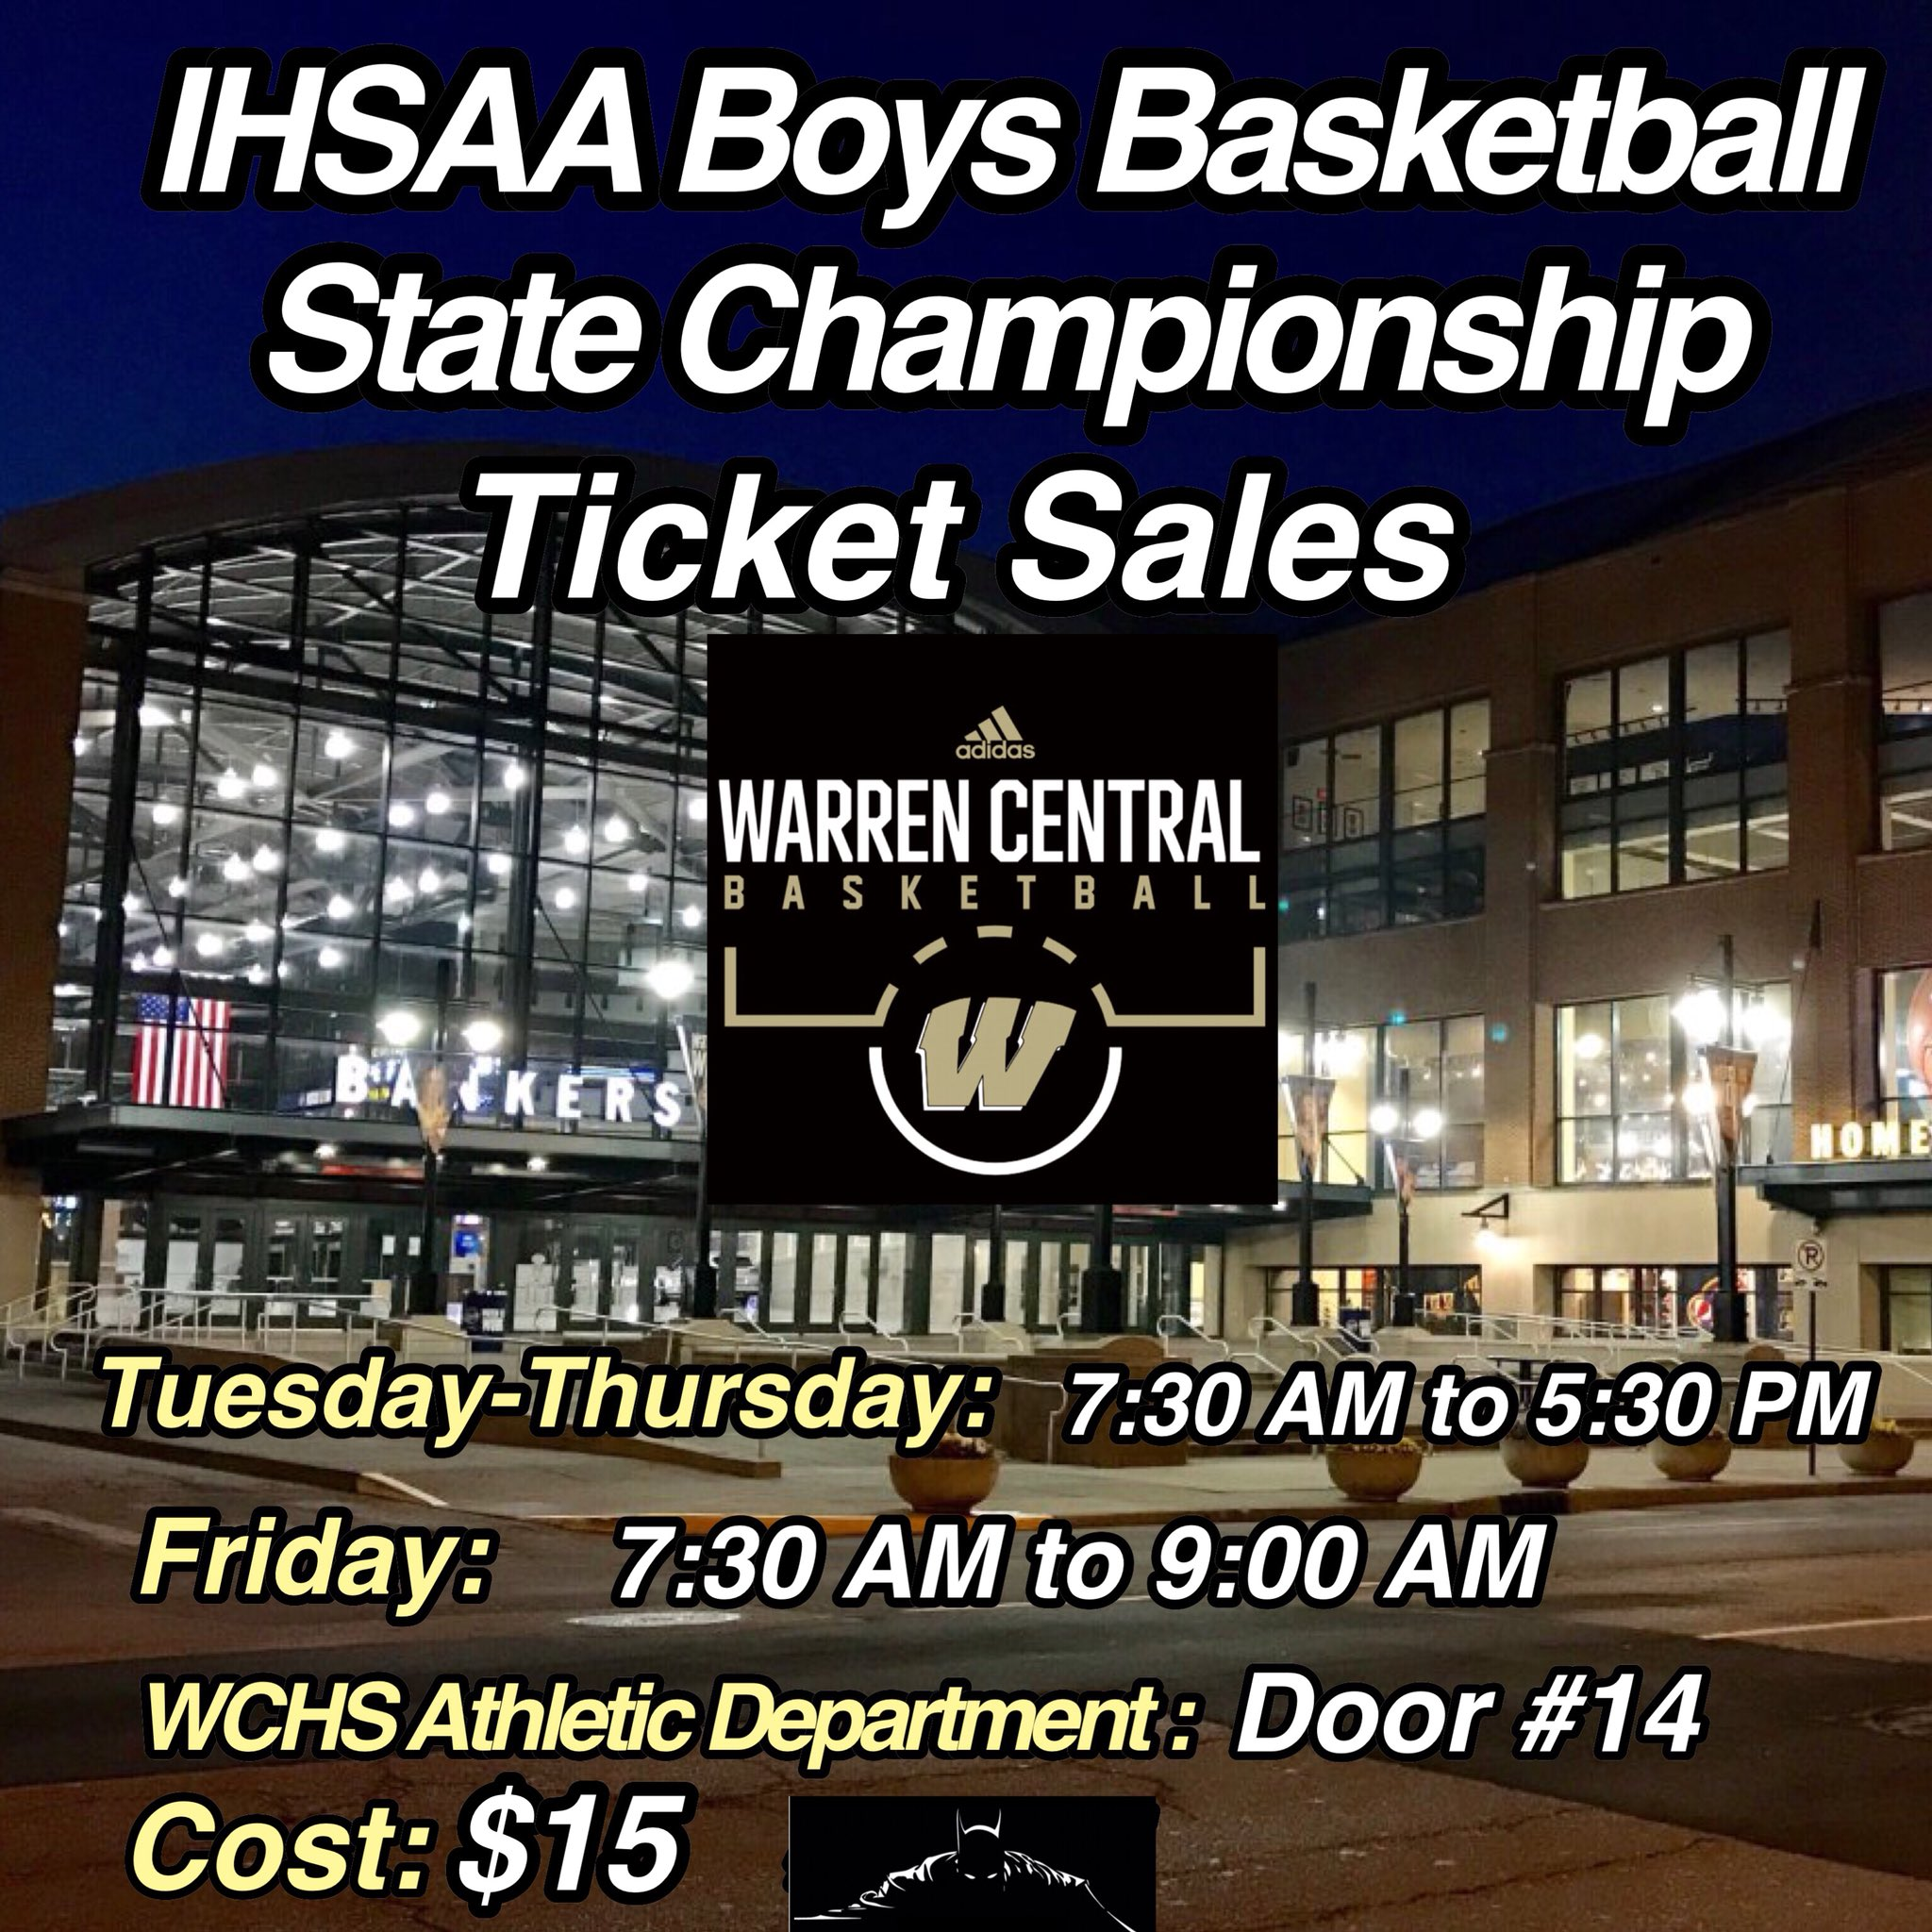 IHSAA Boys Basketball State Championship Ticket Sales